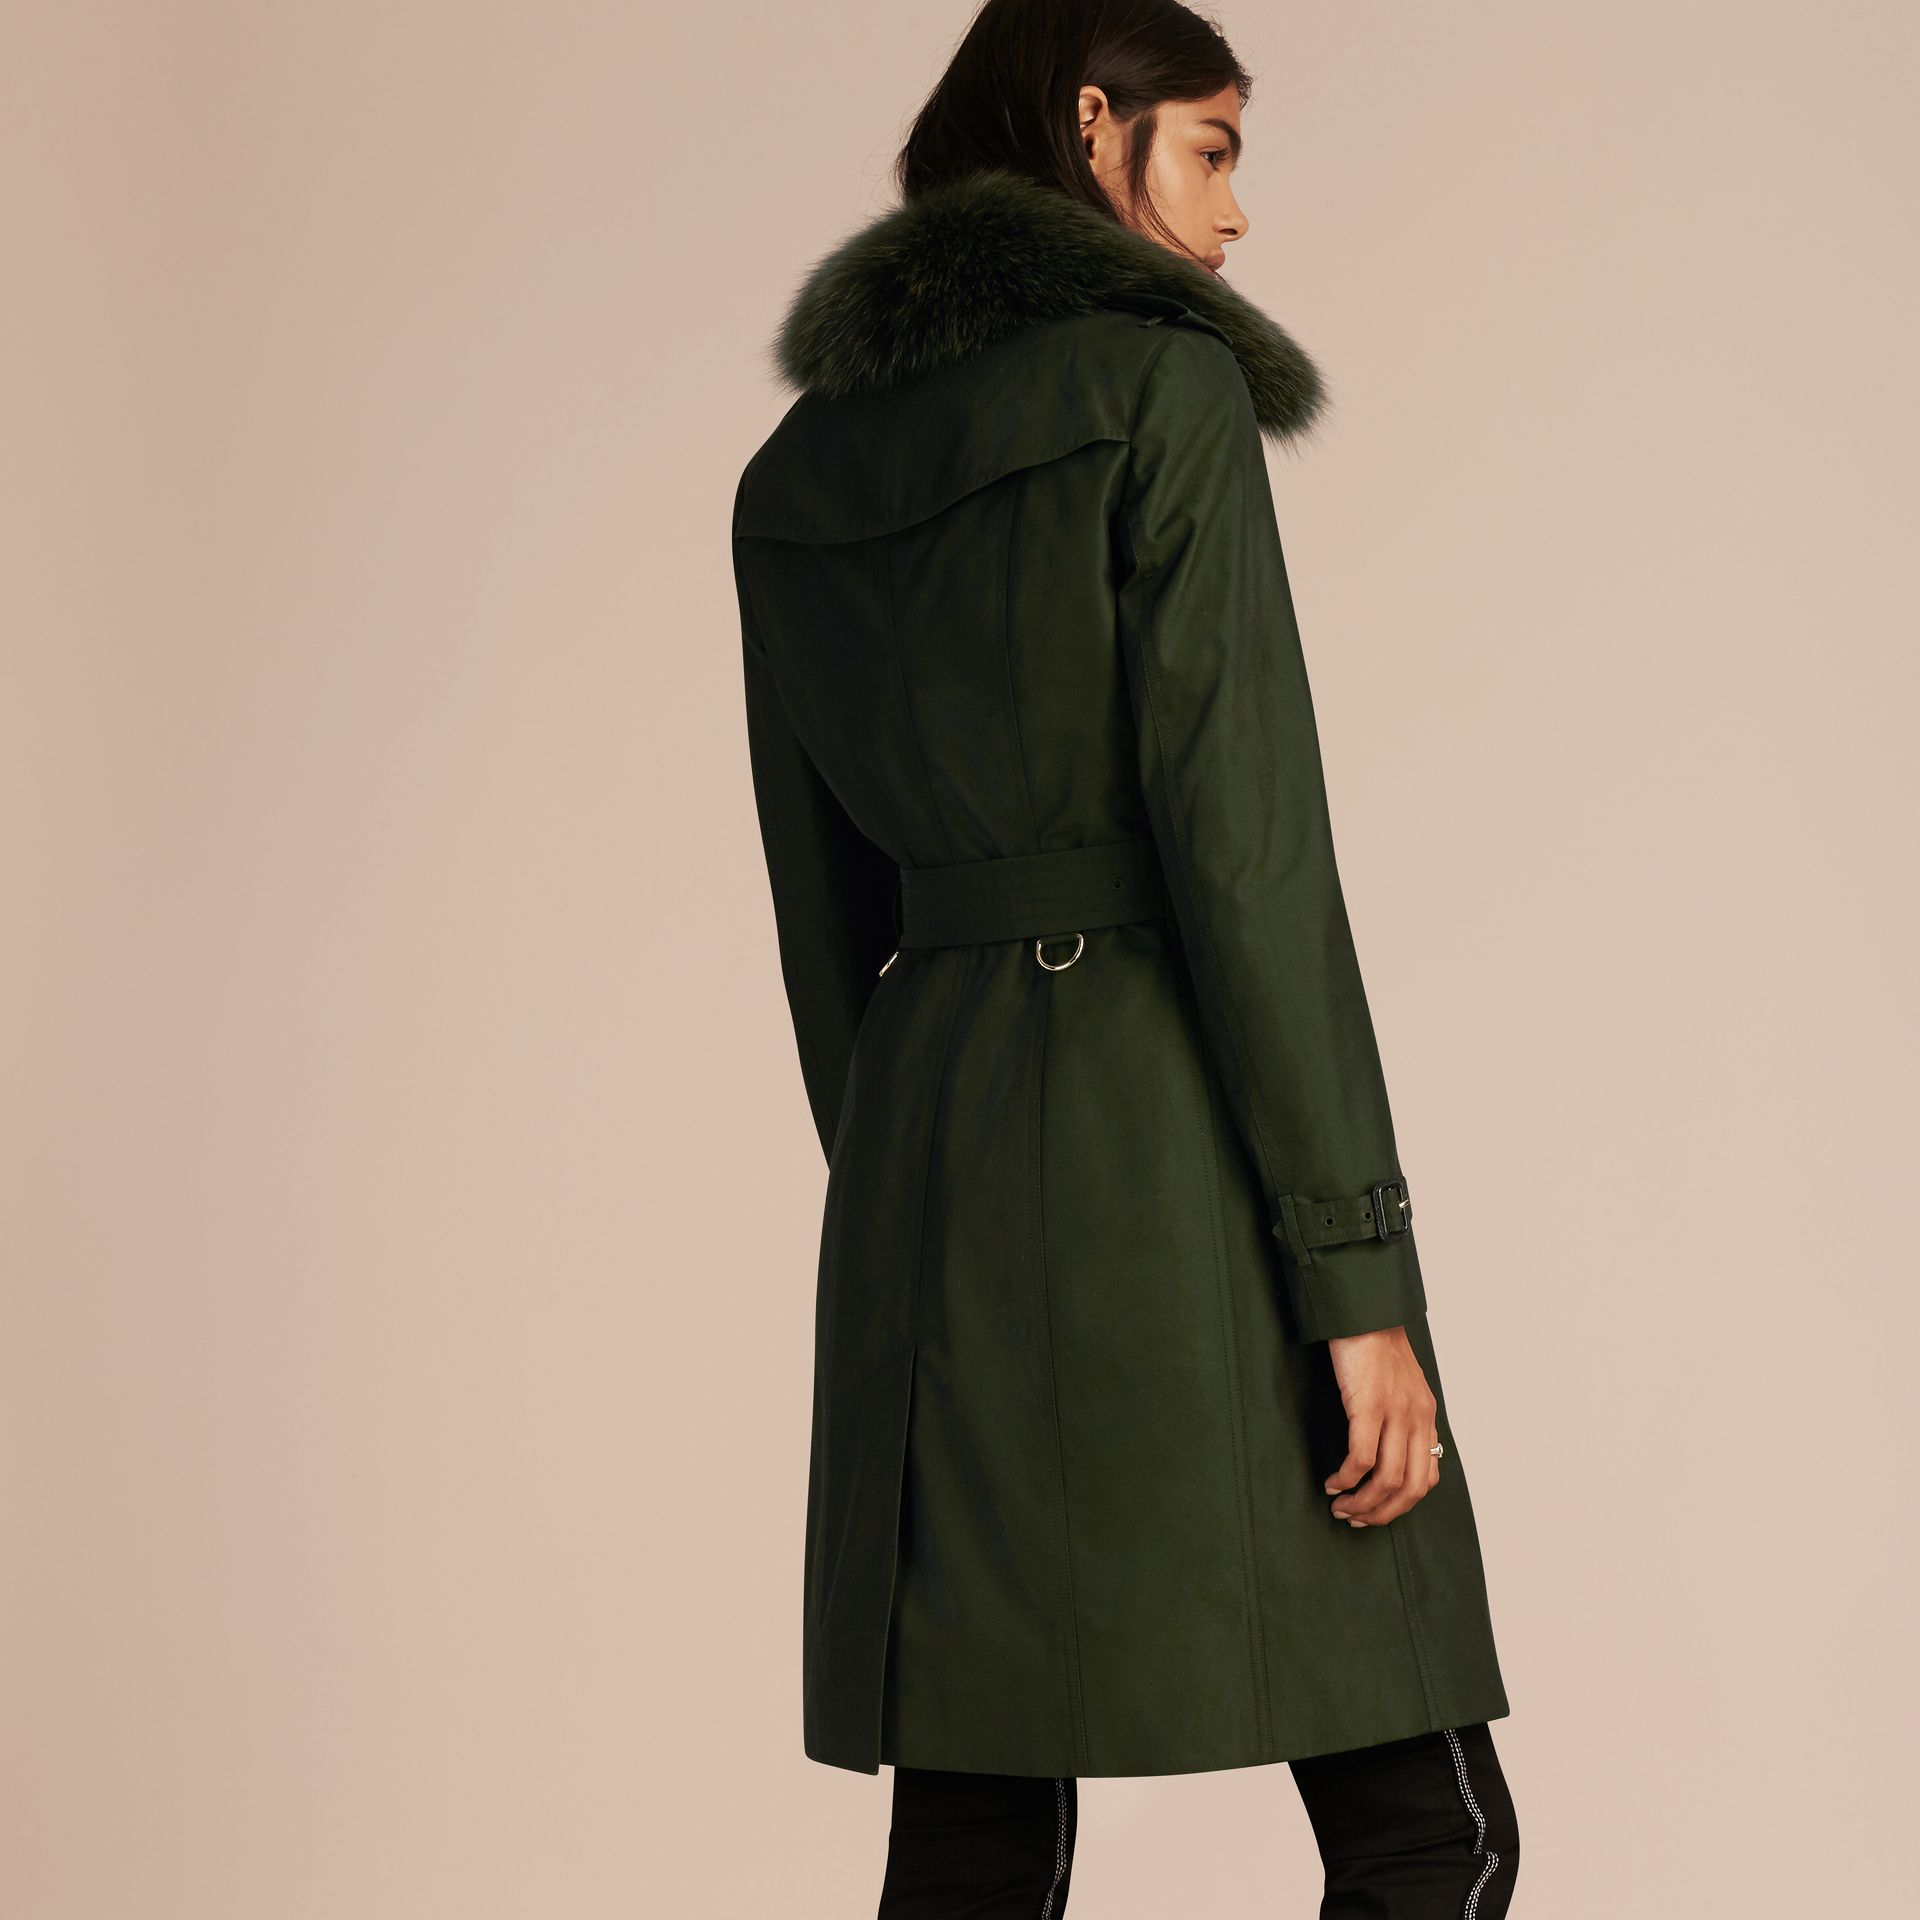 Dark cedar green Cotton Gabardine Trench Coat with Detachable Fur Trim Dark Cedar Green - gallery image 3